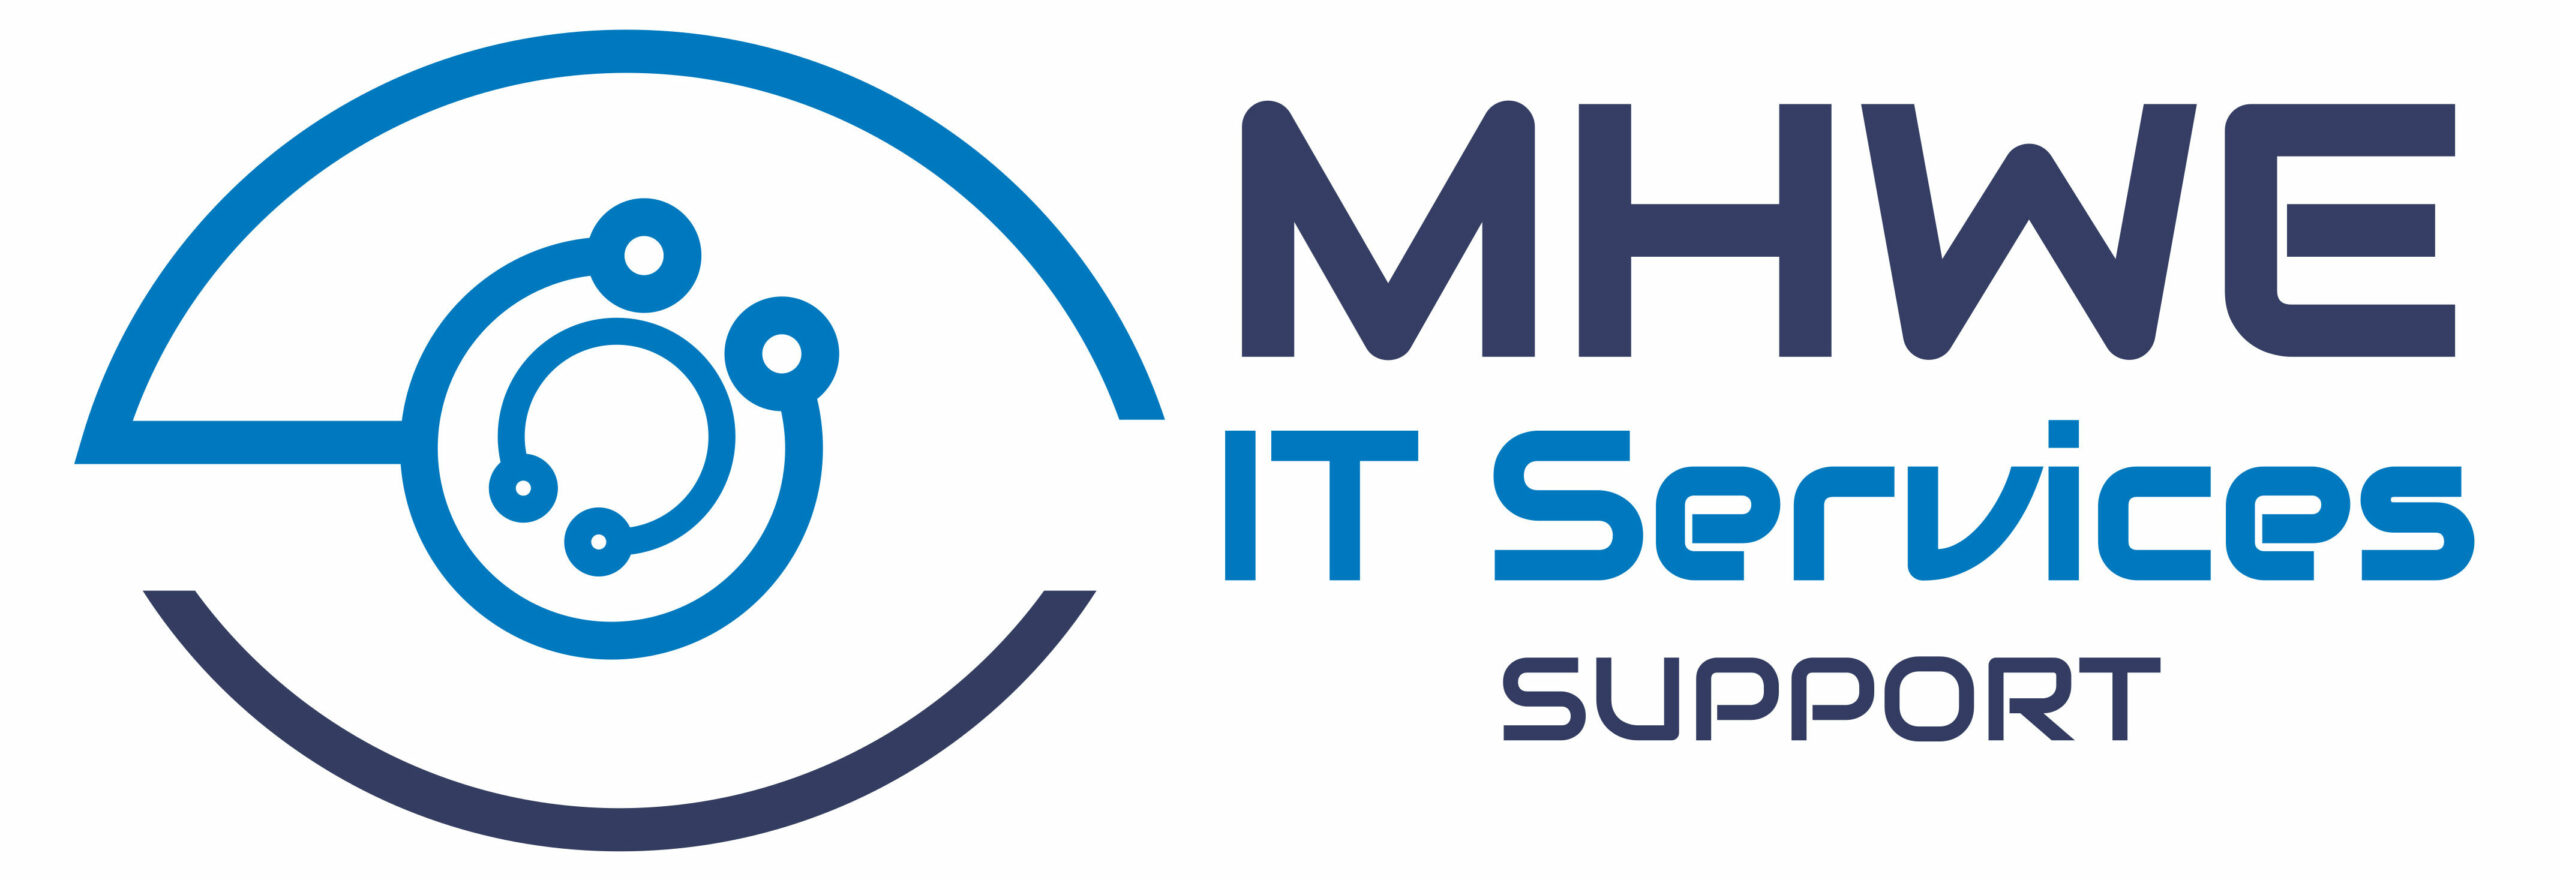 MHWE IT Services Support